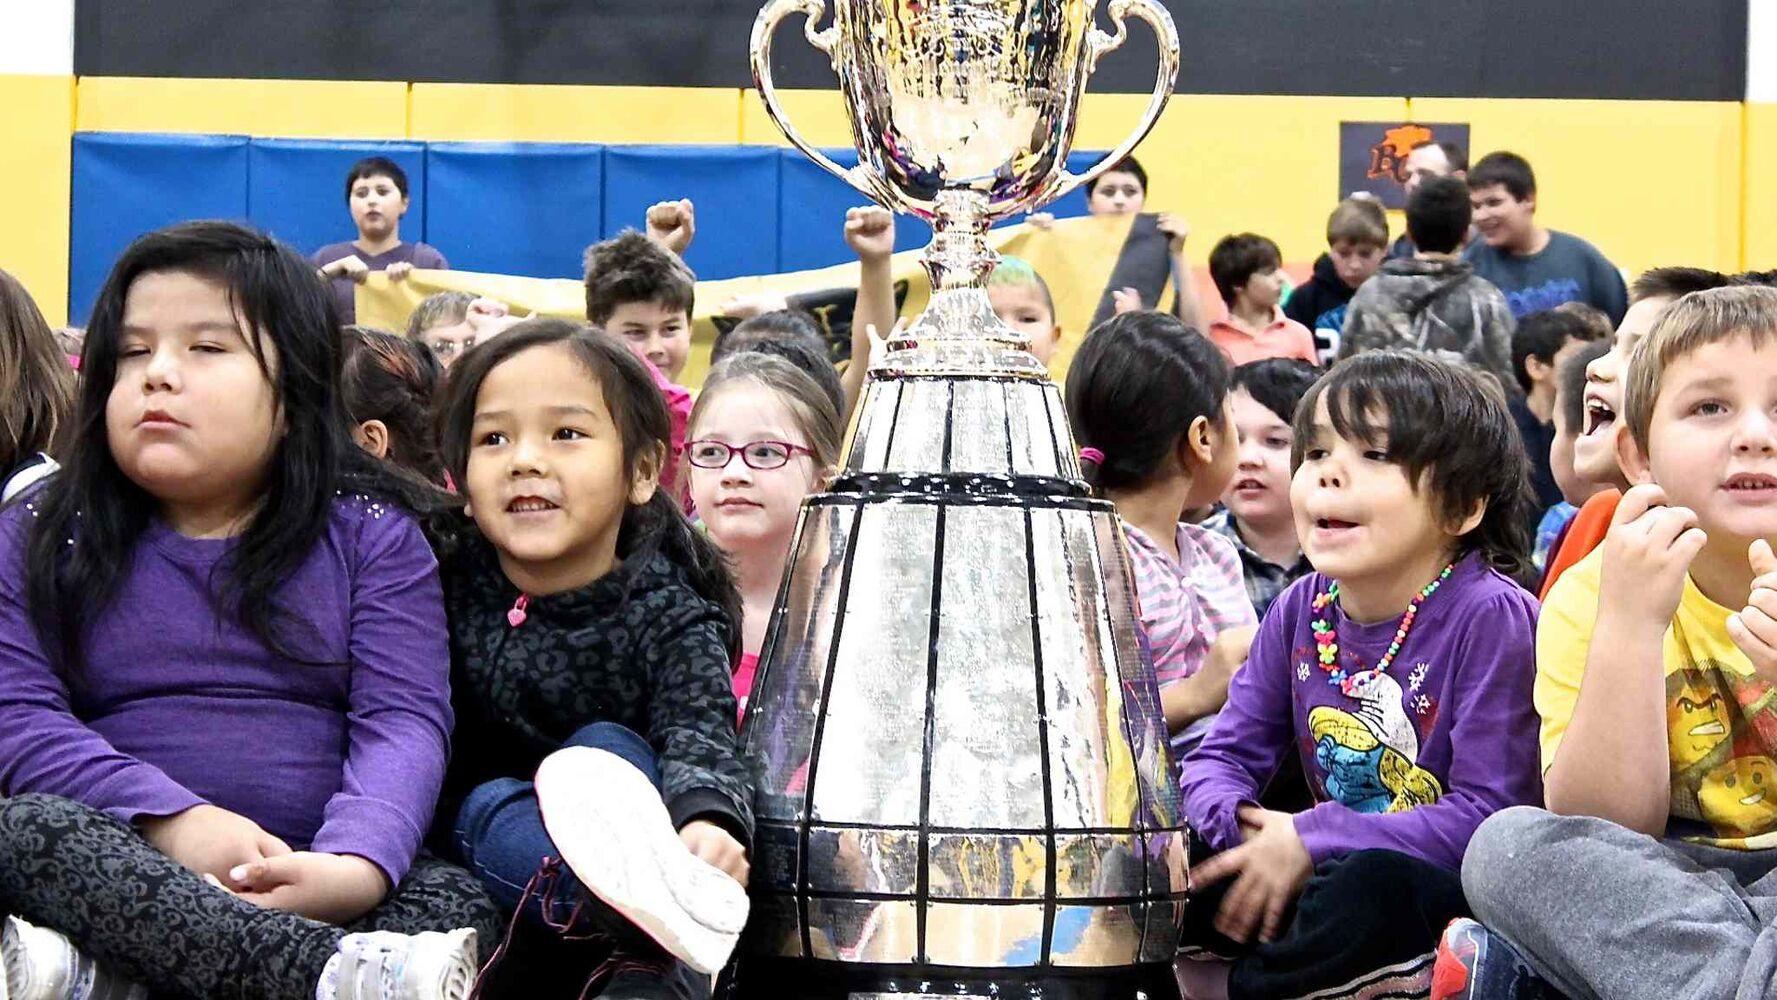 Students at Juniper School in Thompson were delivered a real treat this week - an up-close-and-personal look at the Grey Cup. Juniper was one seven schools the Cup visited that day as part of an anti-bullying campaign. (Jeff Hamilton / Winnipeg Free Press)